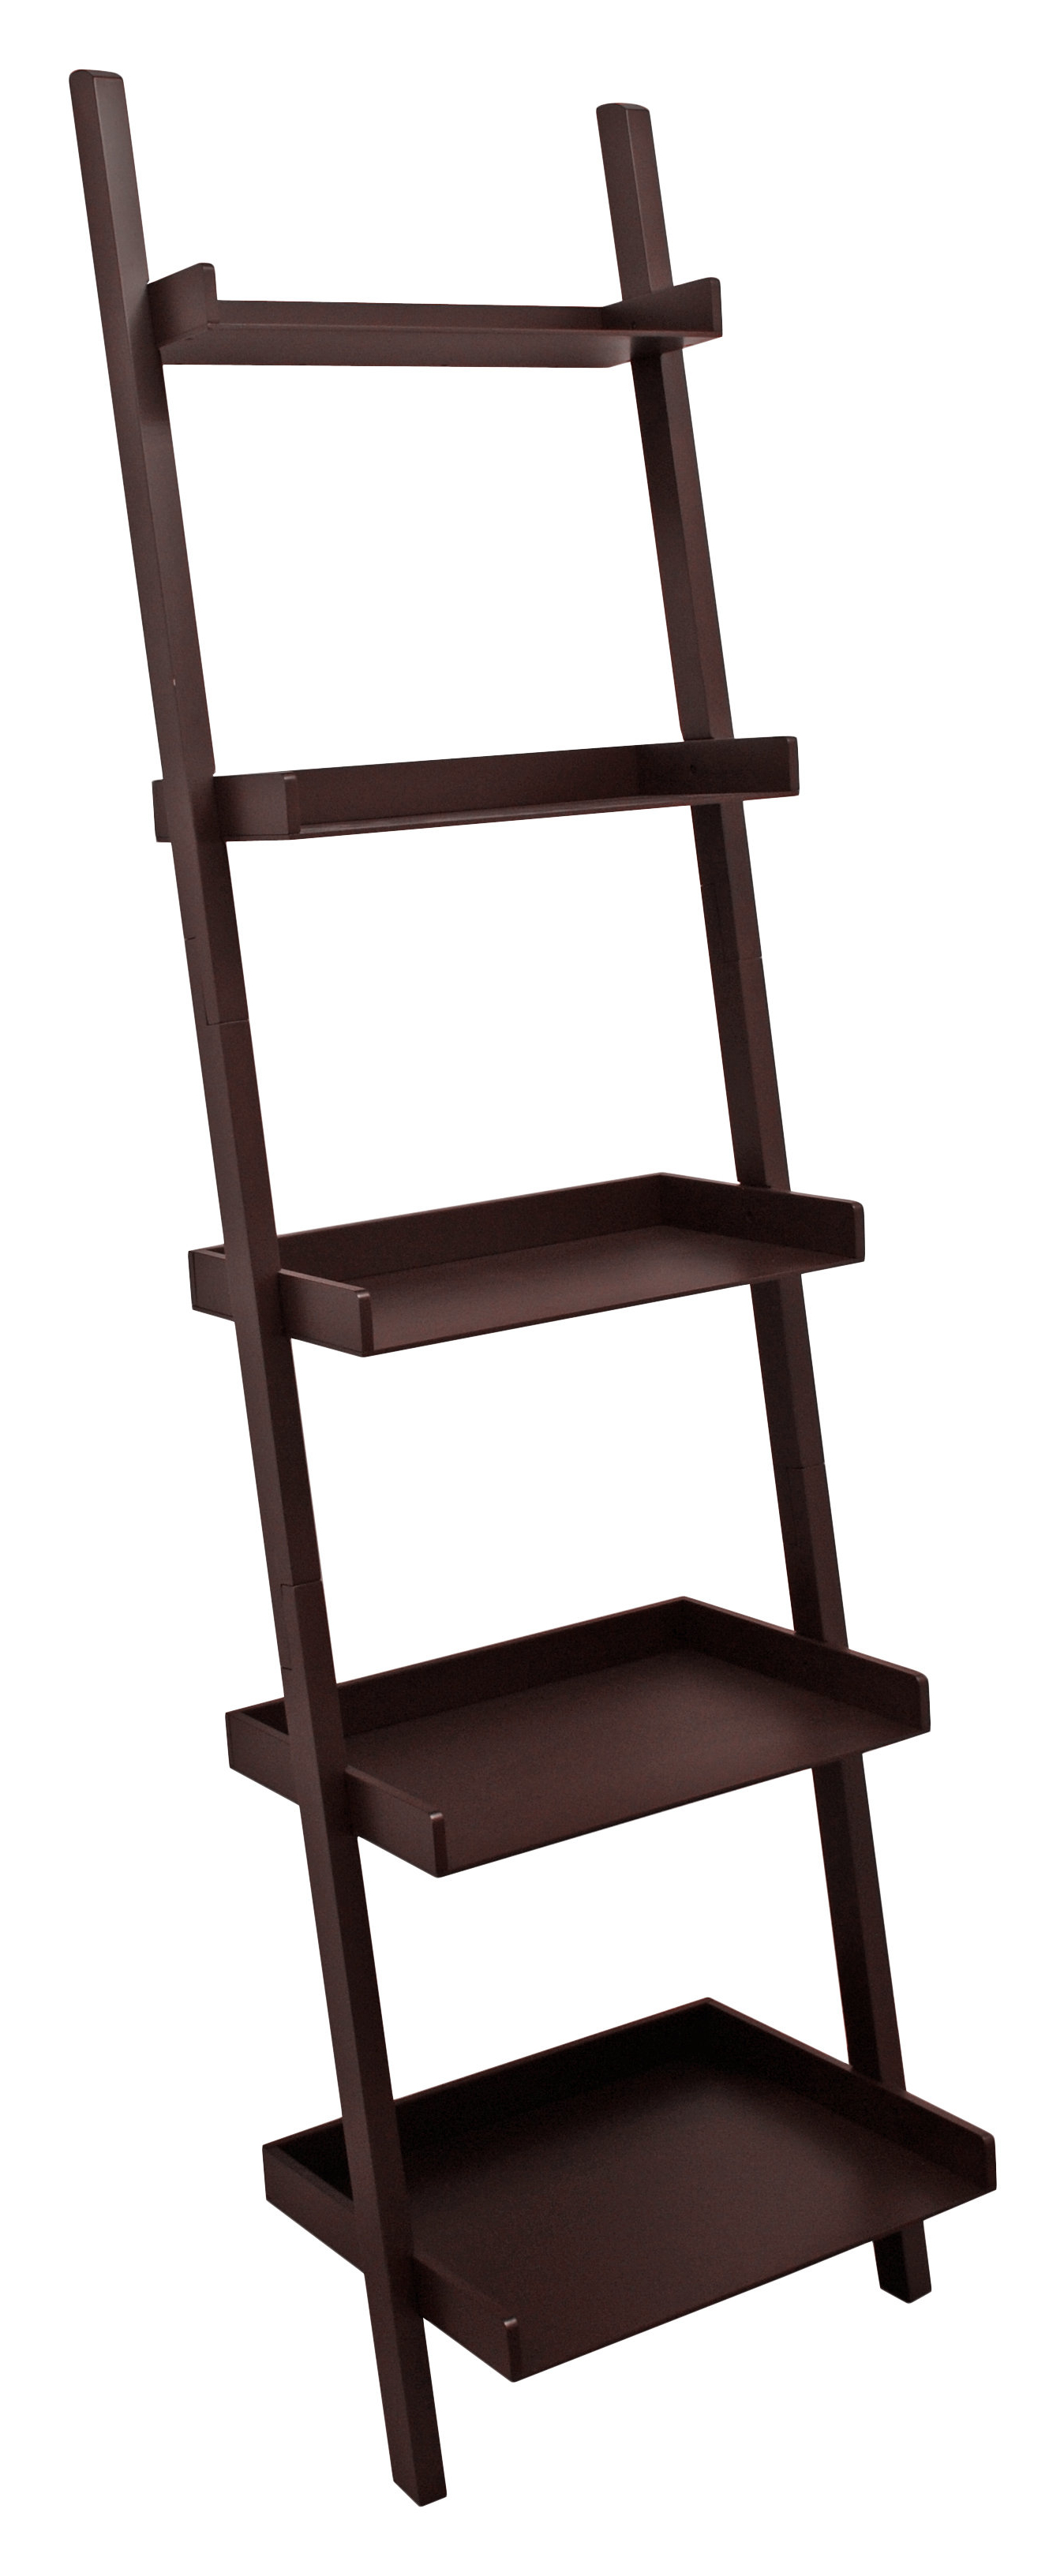 Popular Gilliard Ladder Bookcases With Regard To Pfaff 5 Tier Ladder Bookcase (Gallery 20 of 20)